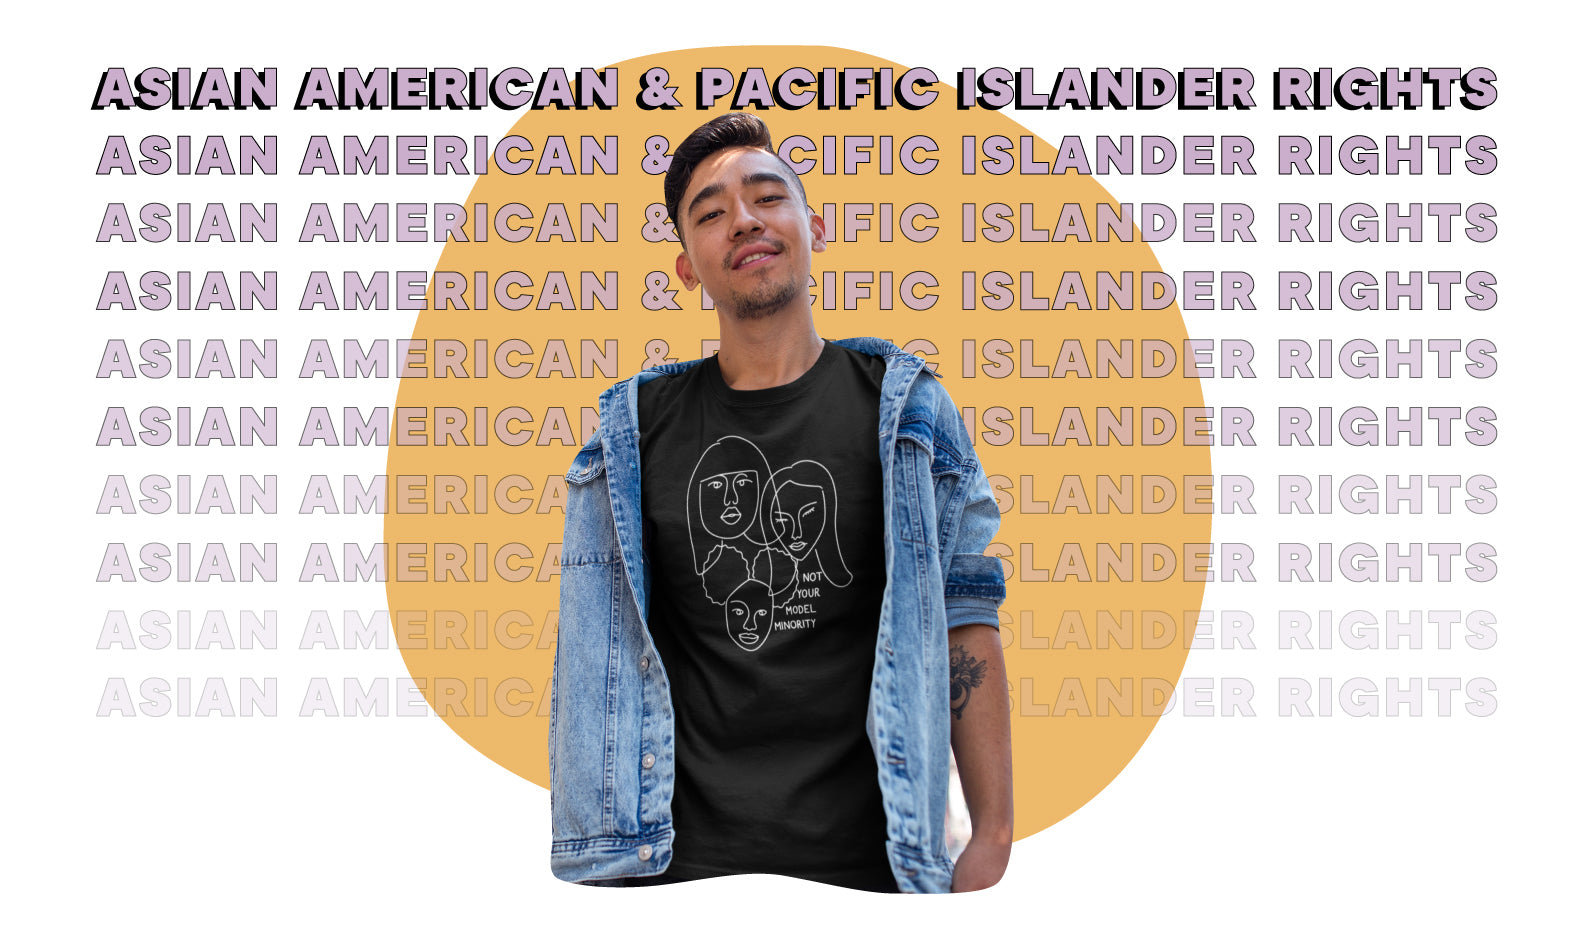 Header Image: Asian American & Pacific Islander Rights